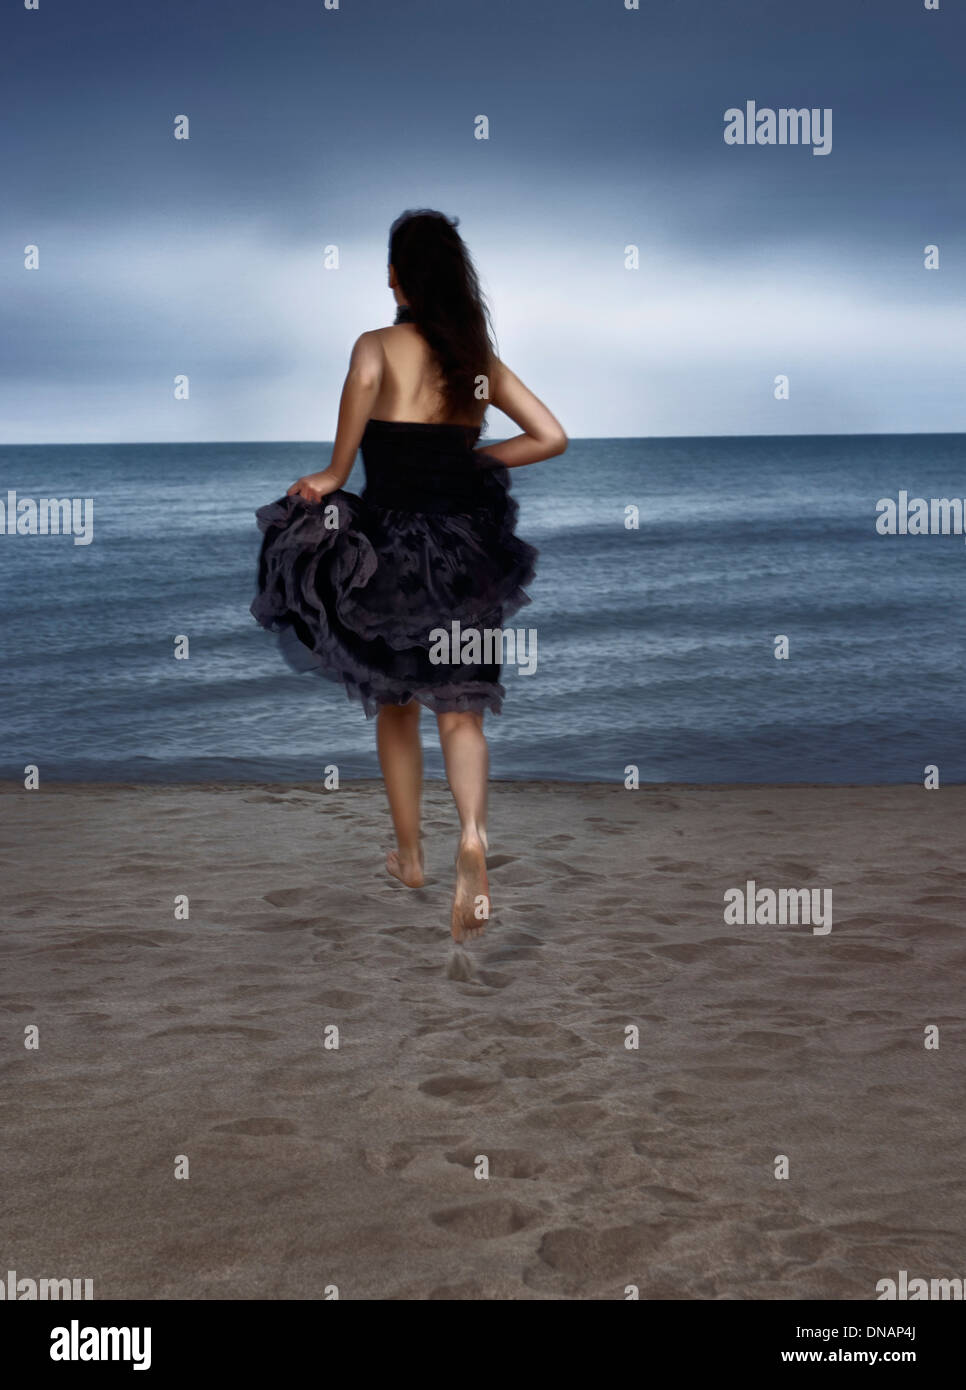 Young woman in black dress running towards the shore, rear view Stock Photo